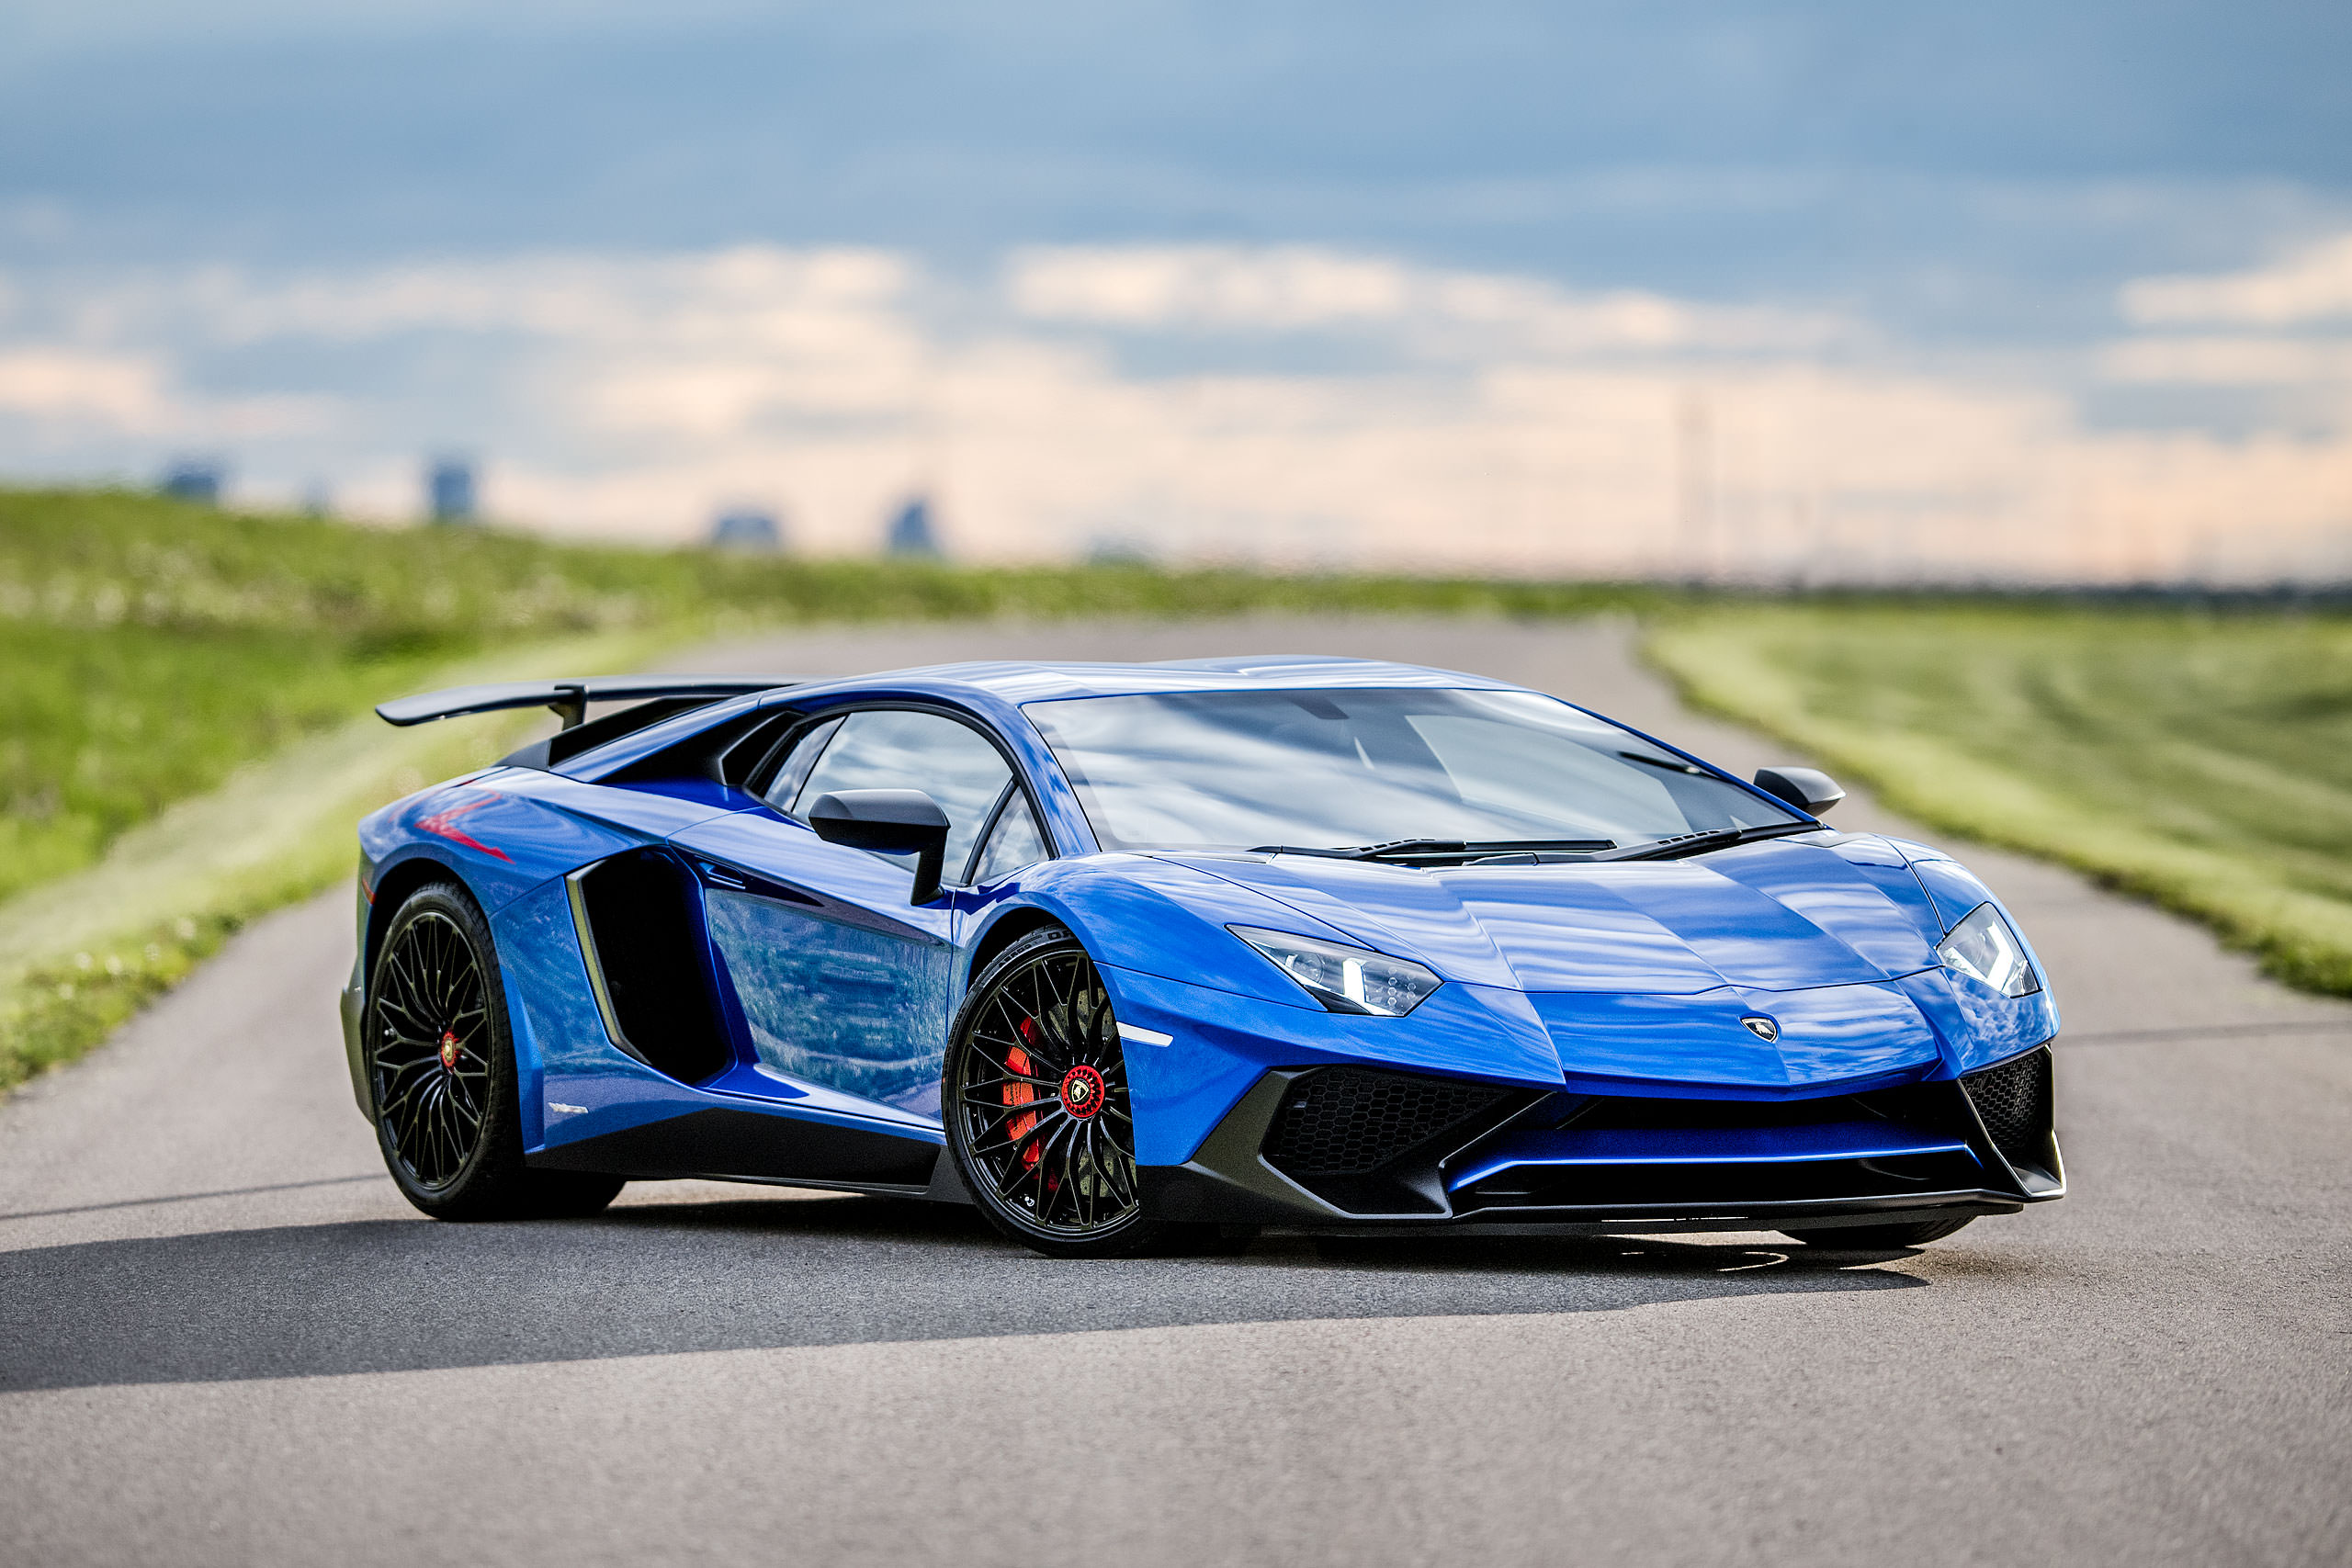 aventador youtube with watch lamborghini up roadster doors open cruising